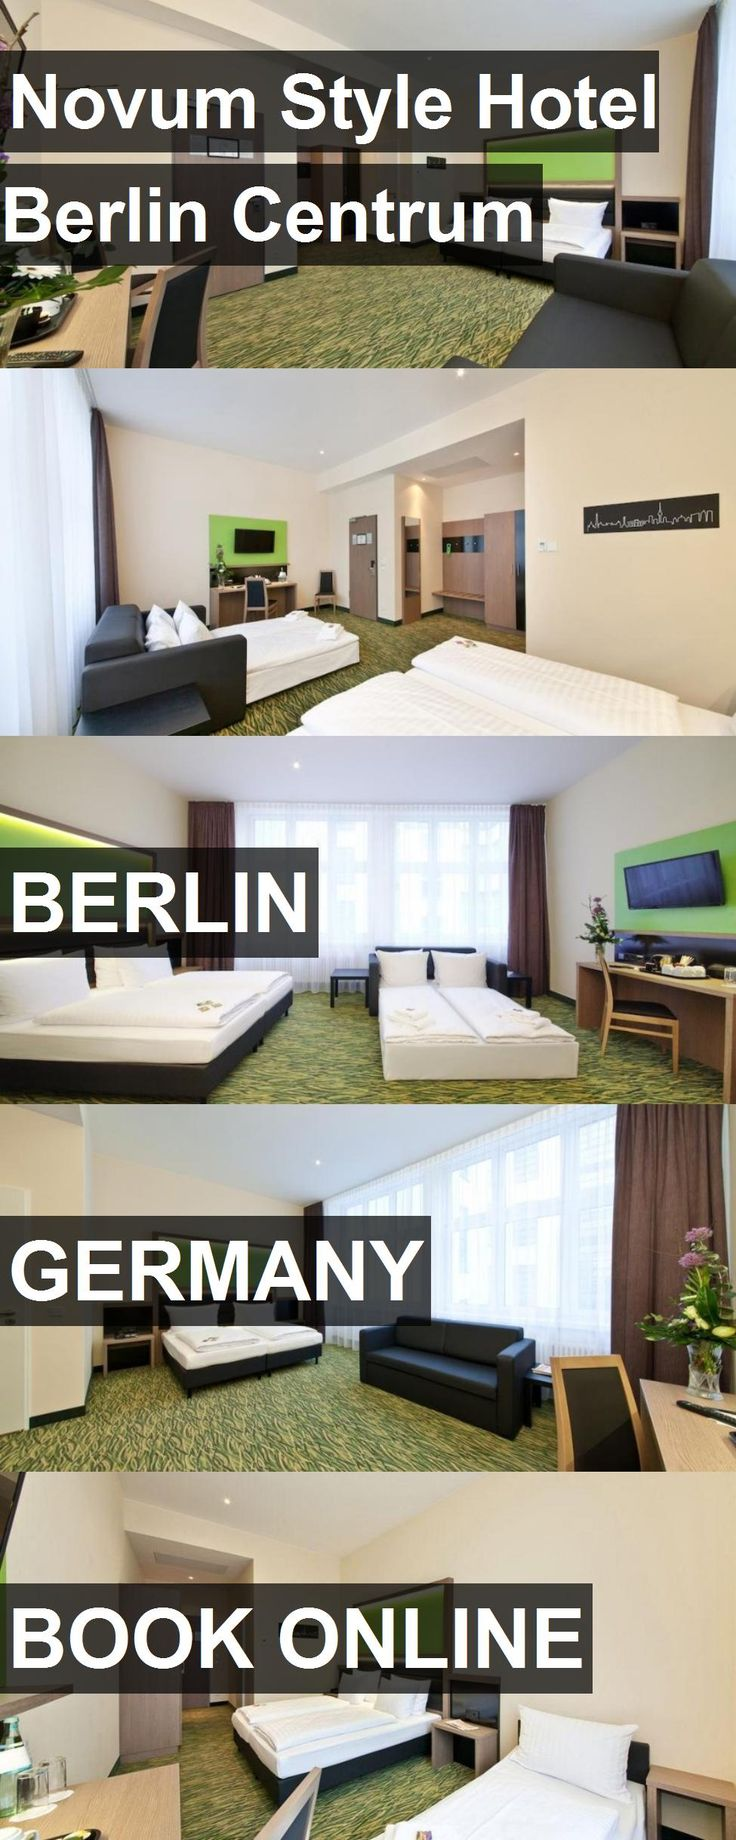 Novum Style Hotel Berlin Centrum in Berlin, Germany. For more information, photos, reviews and best prices please follow the link. #Germany #Berlin #travel #vacation #hotel